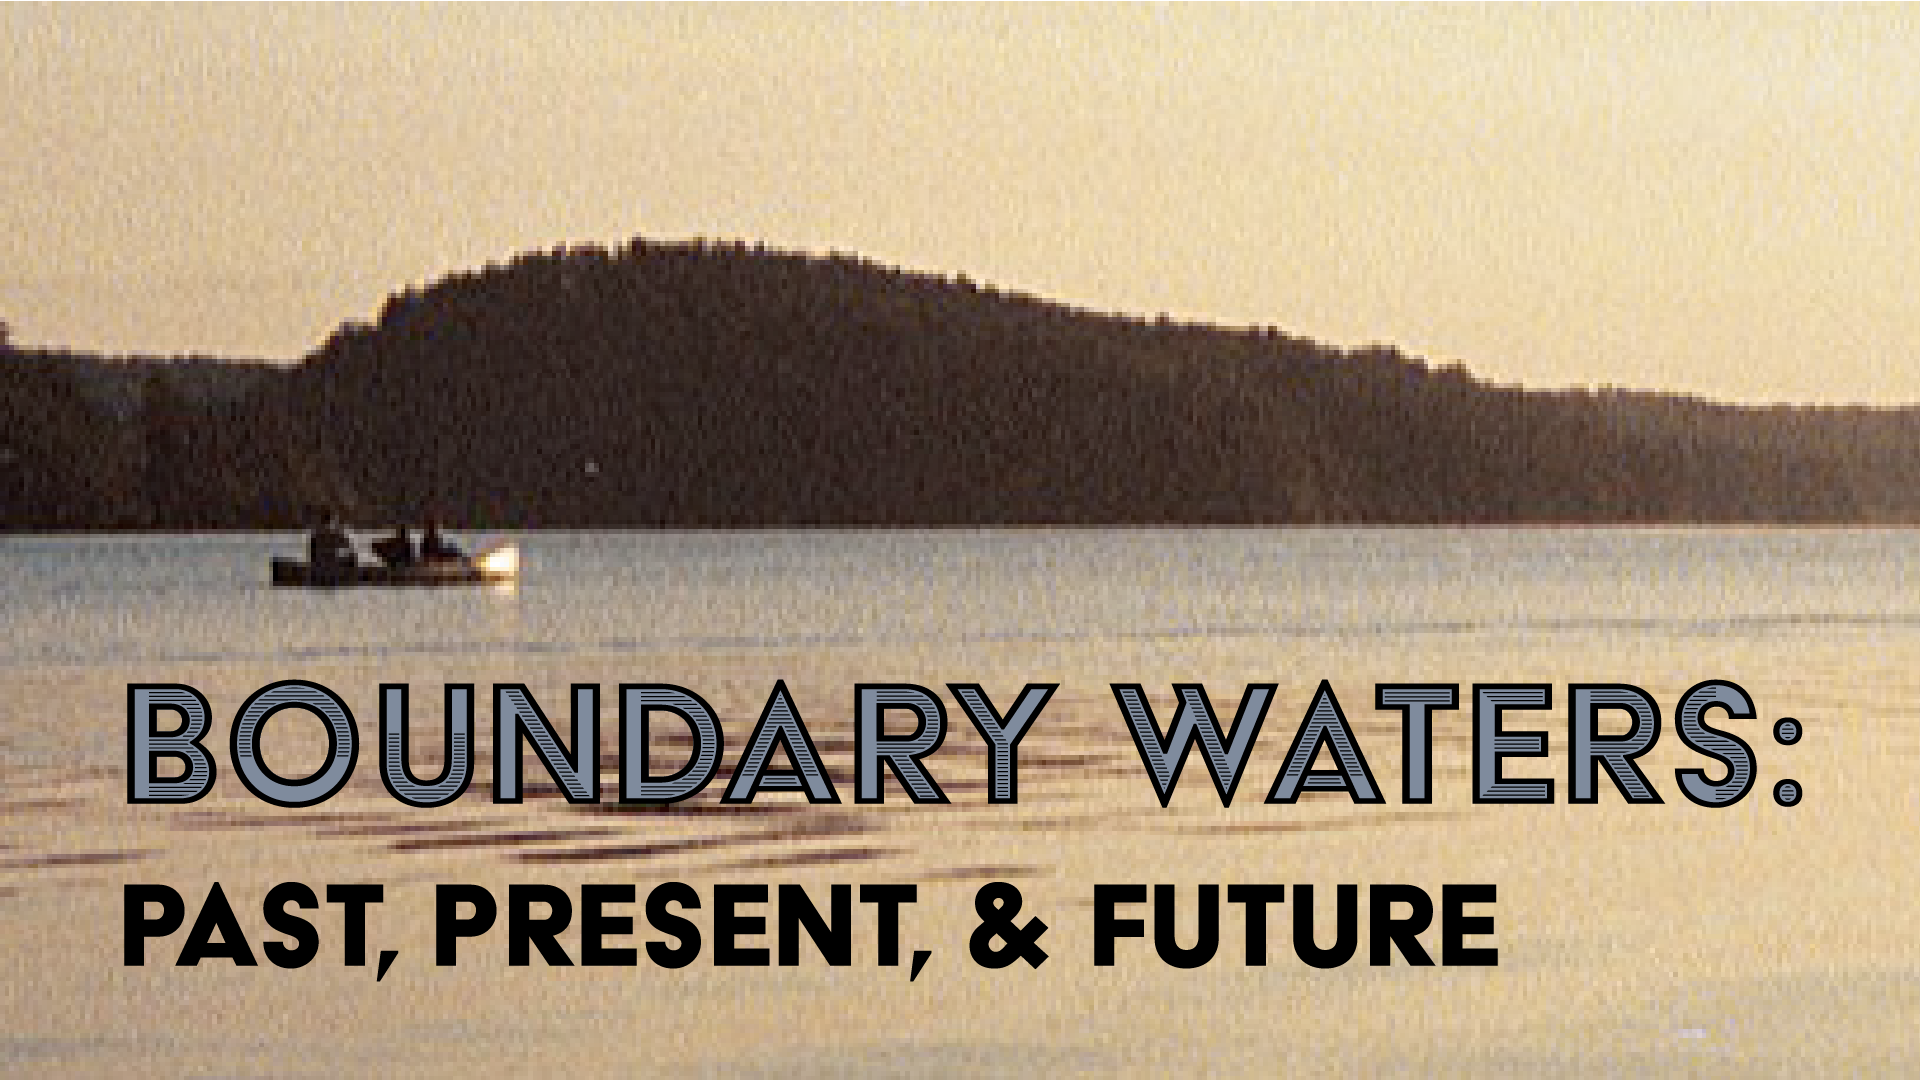 Boundary Waters: Past, Present, & Future